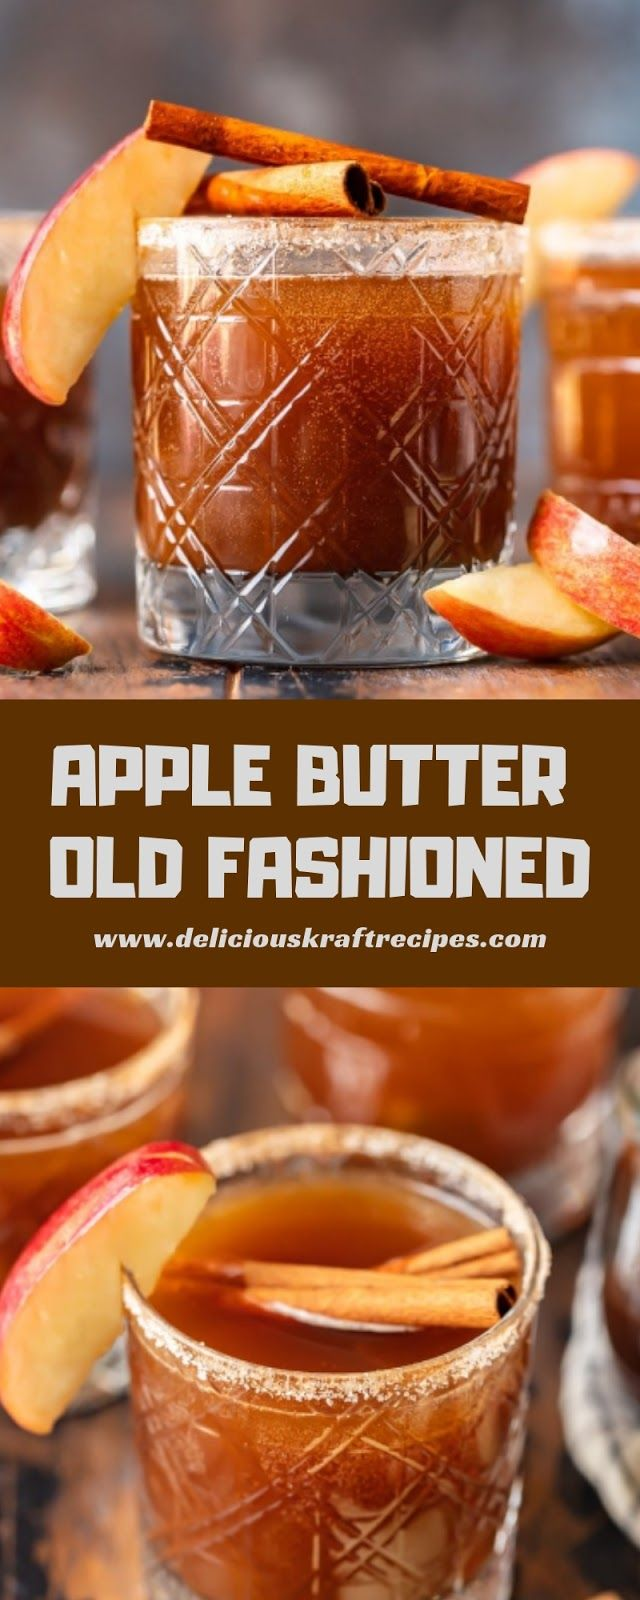 APPLE BUTTER OLD FASHIONED in 2020 Apple butter, Old